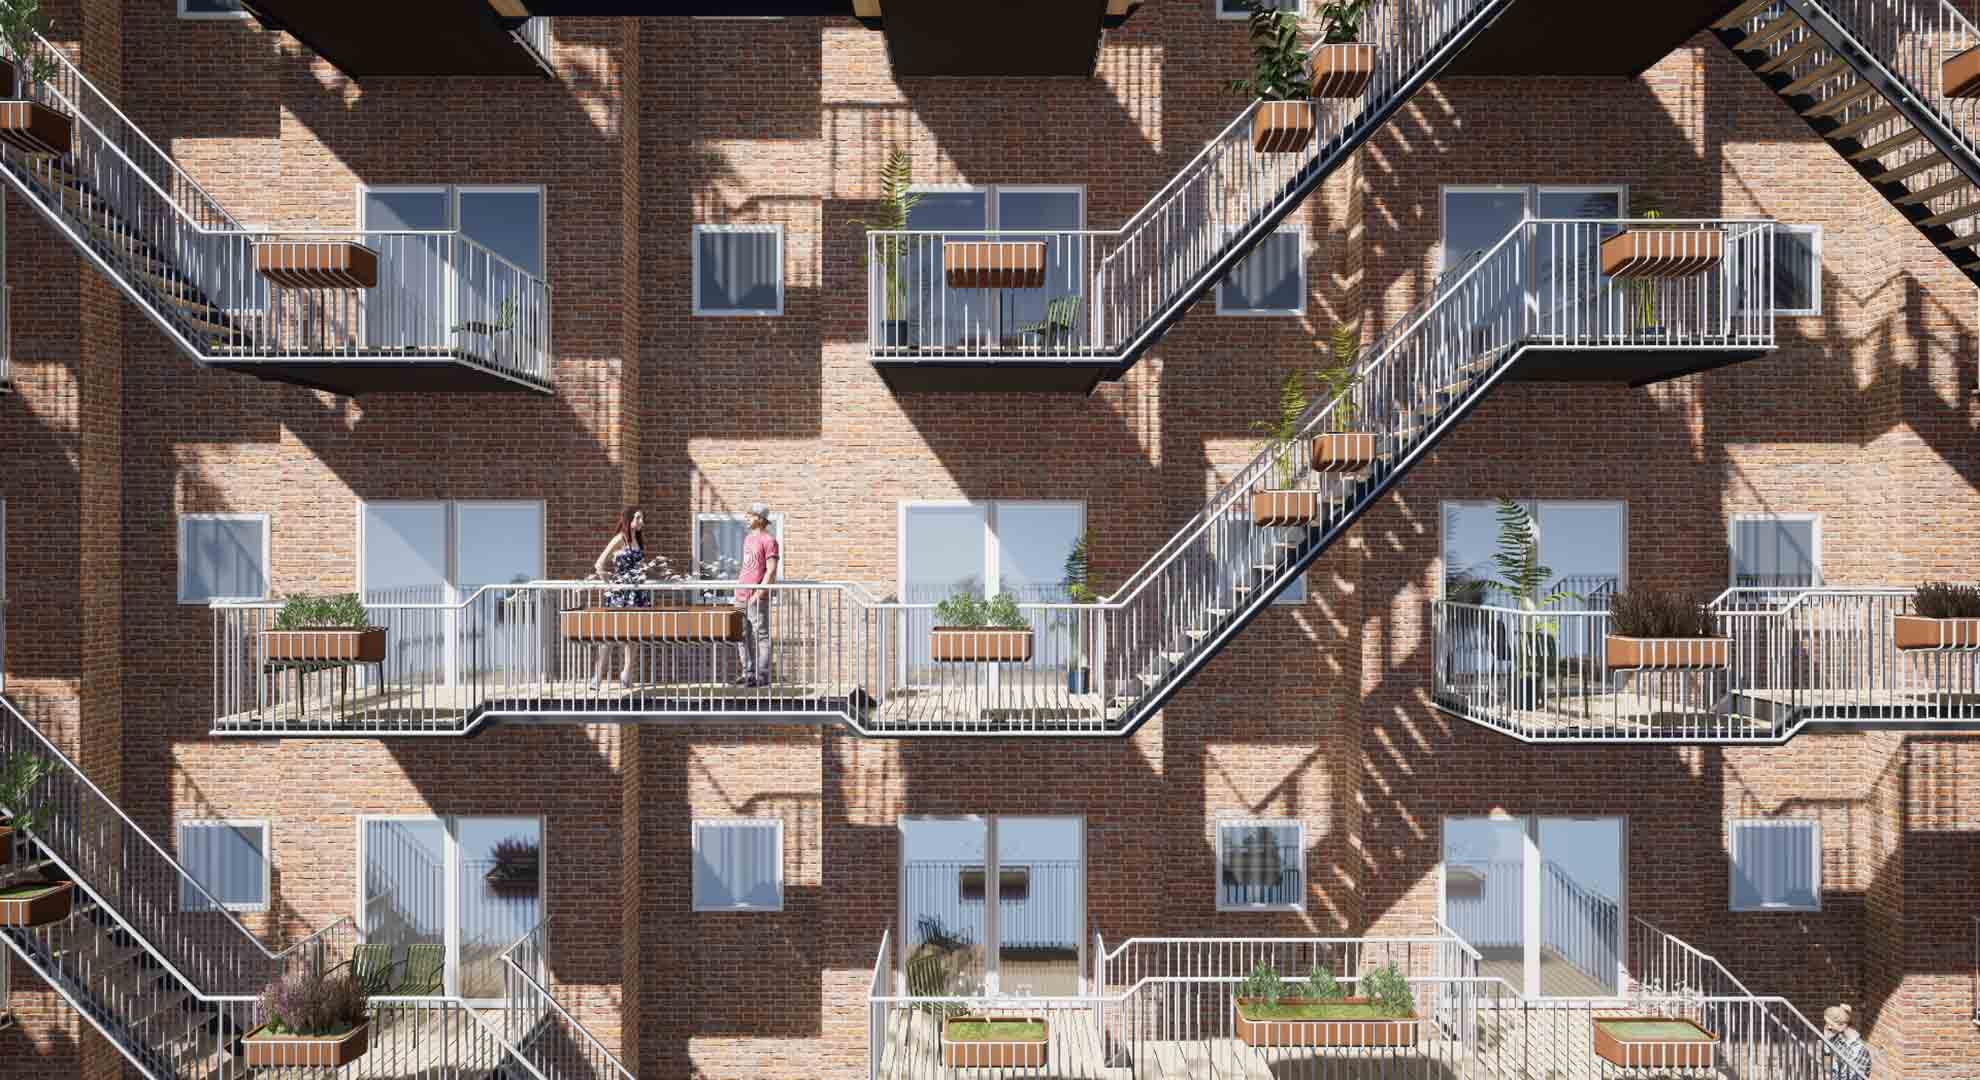 Social balconies are a way of facing loneliness in the city as well as cohousing